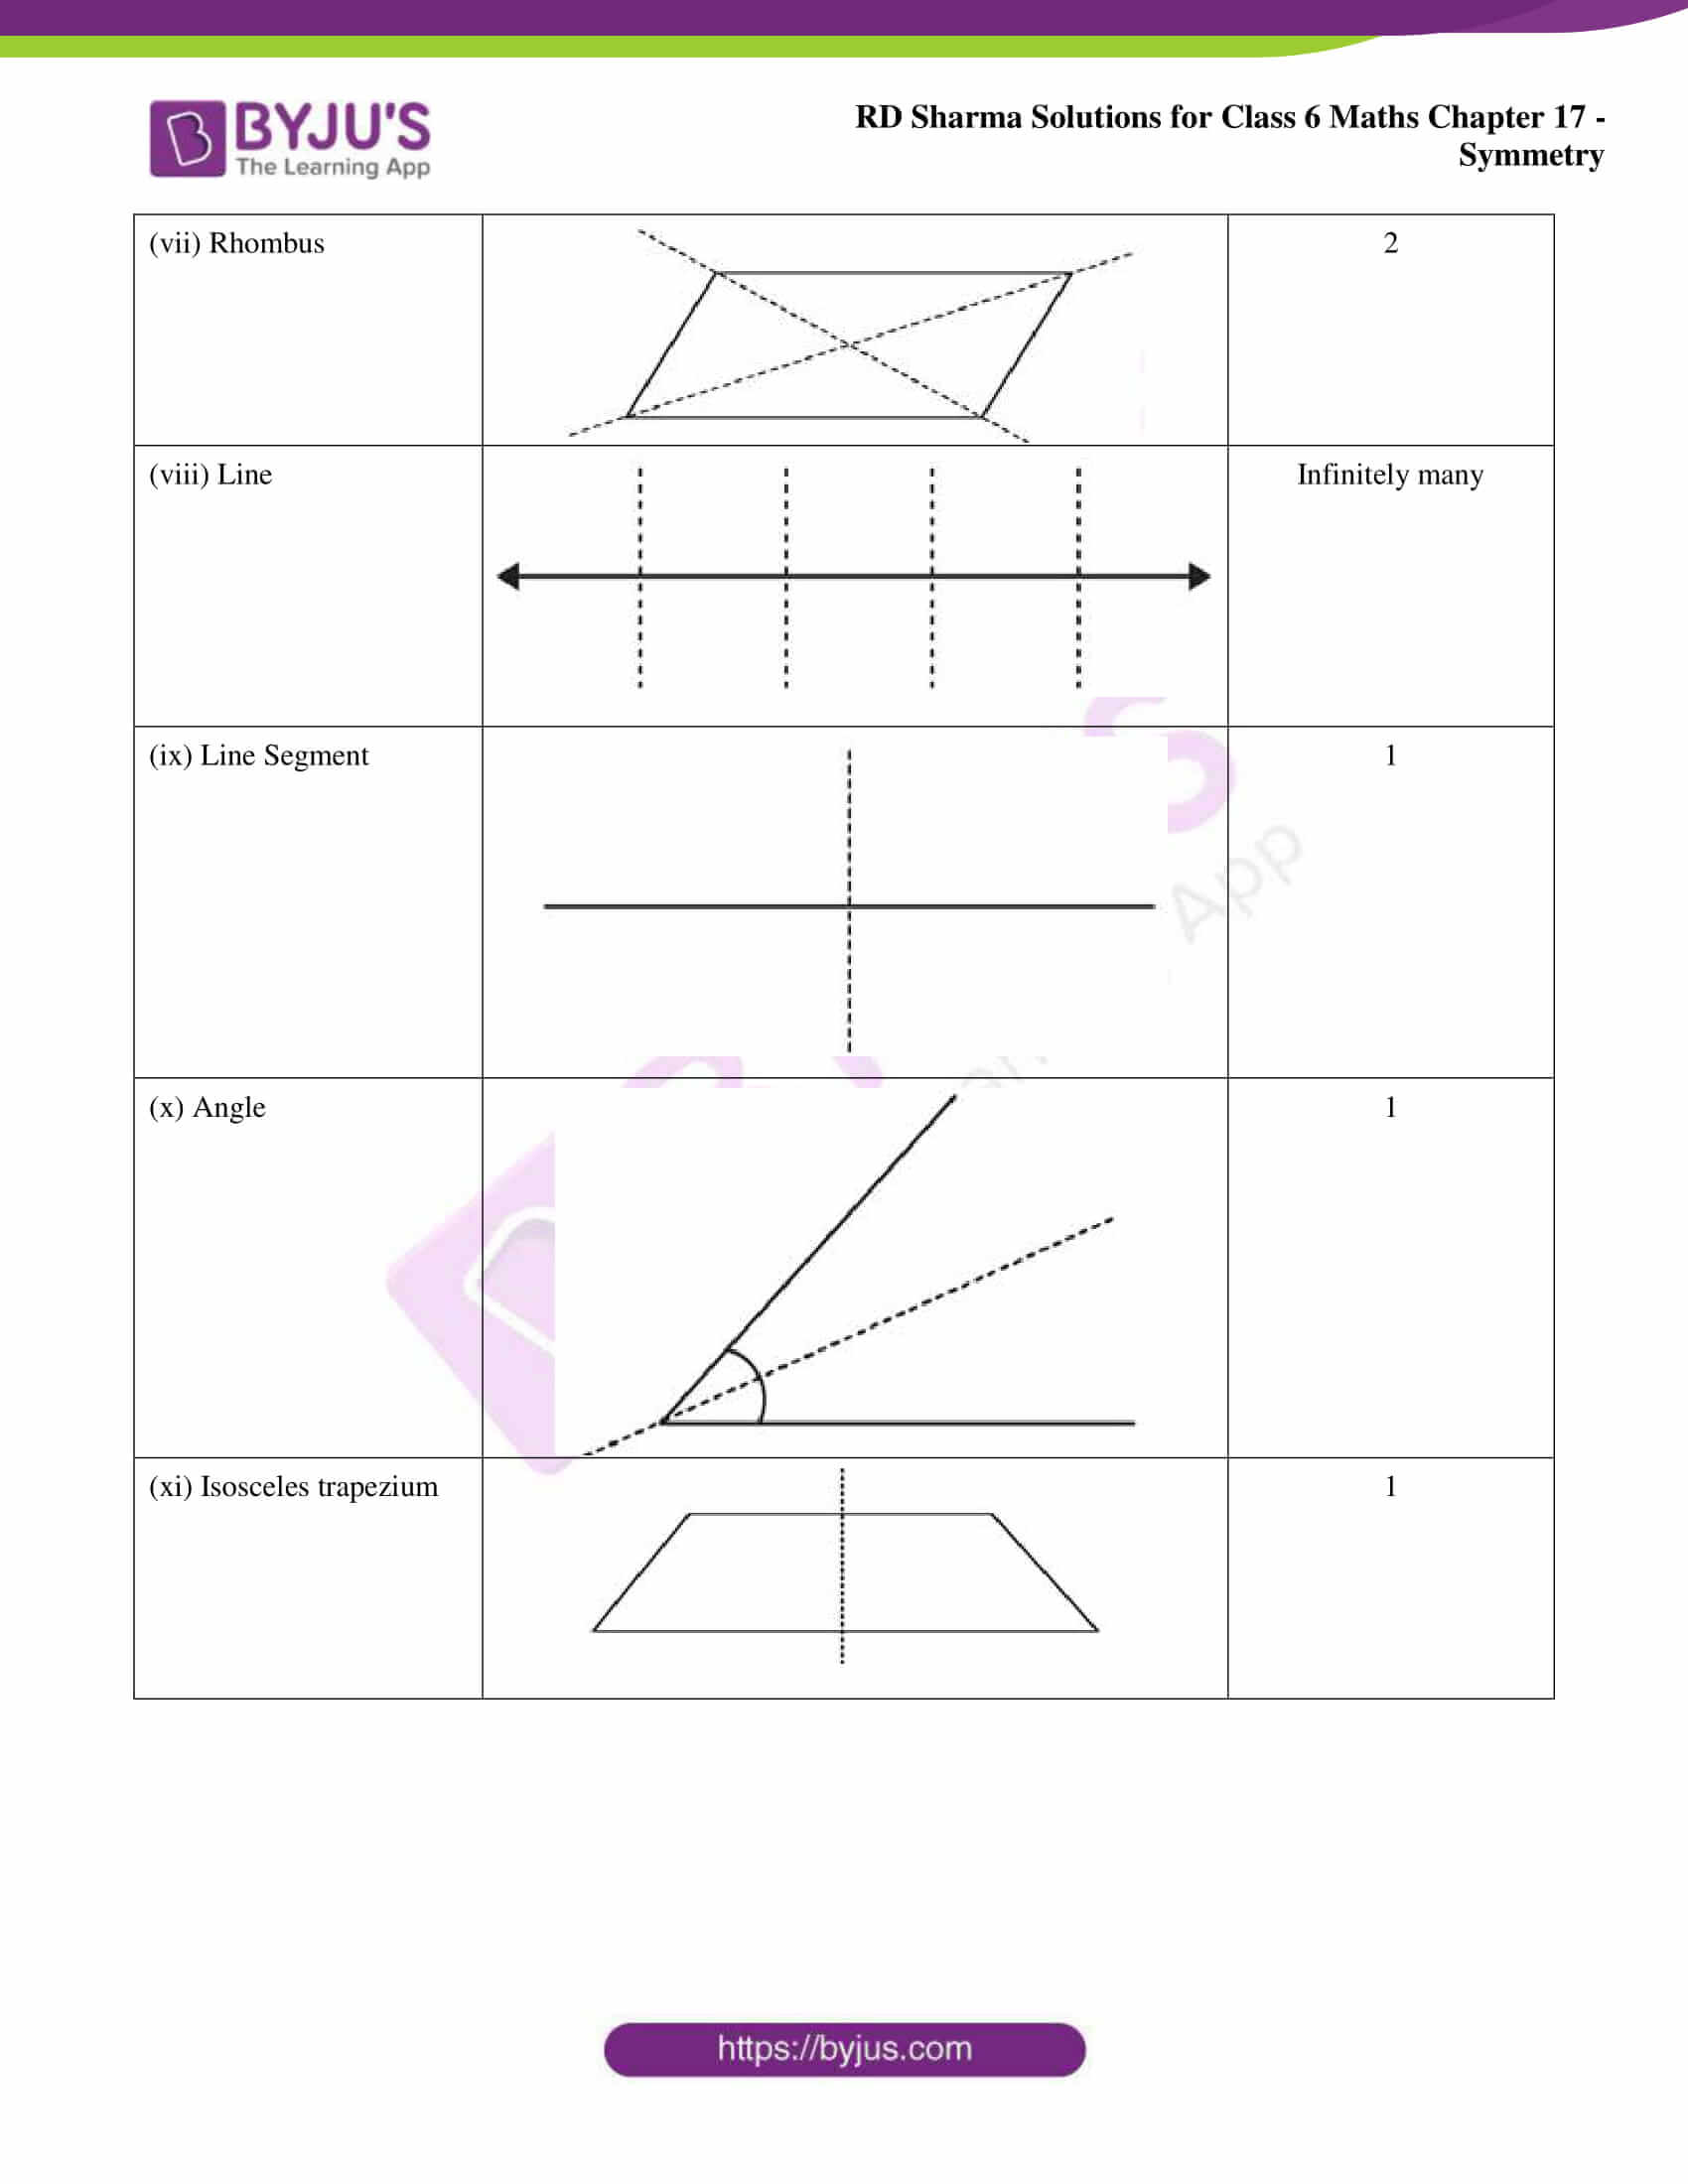 rd sharma solutions nov2020 class 6 maths chapter 17 exercise 3 03